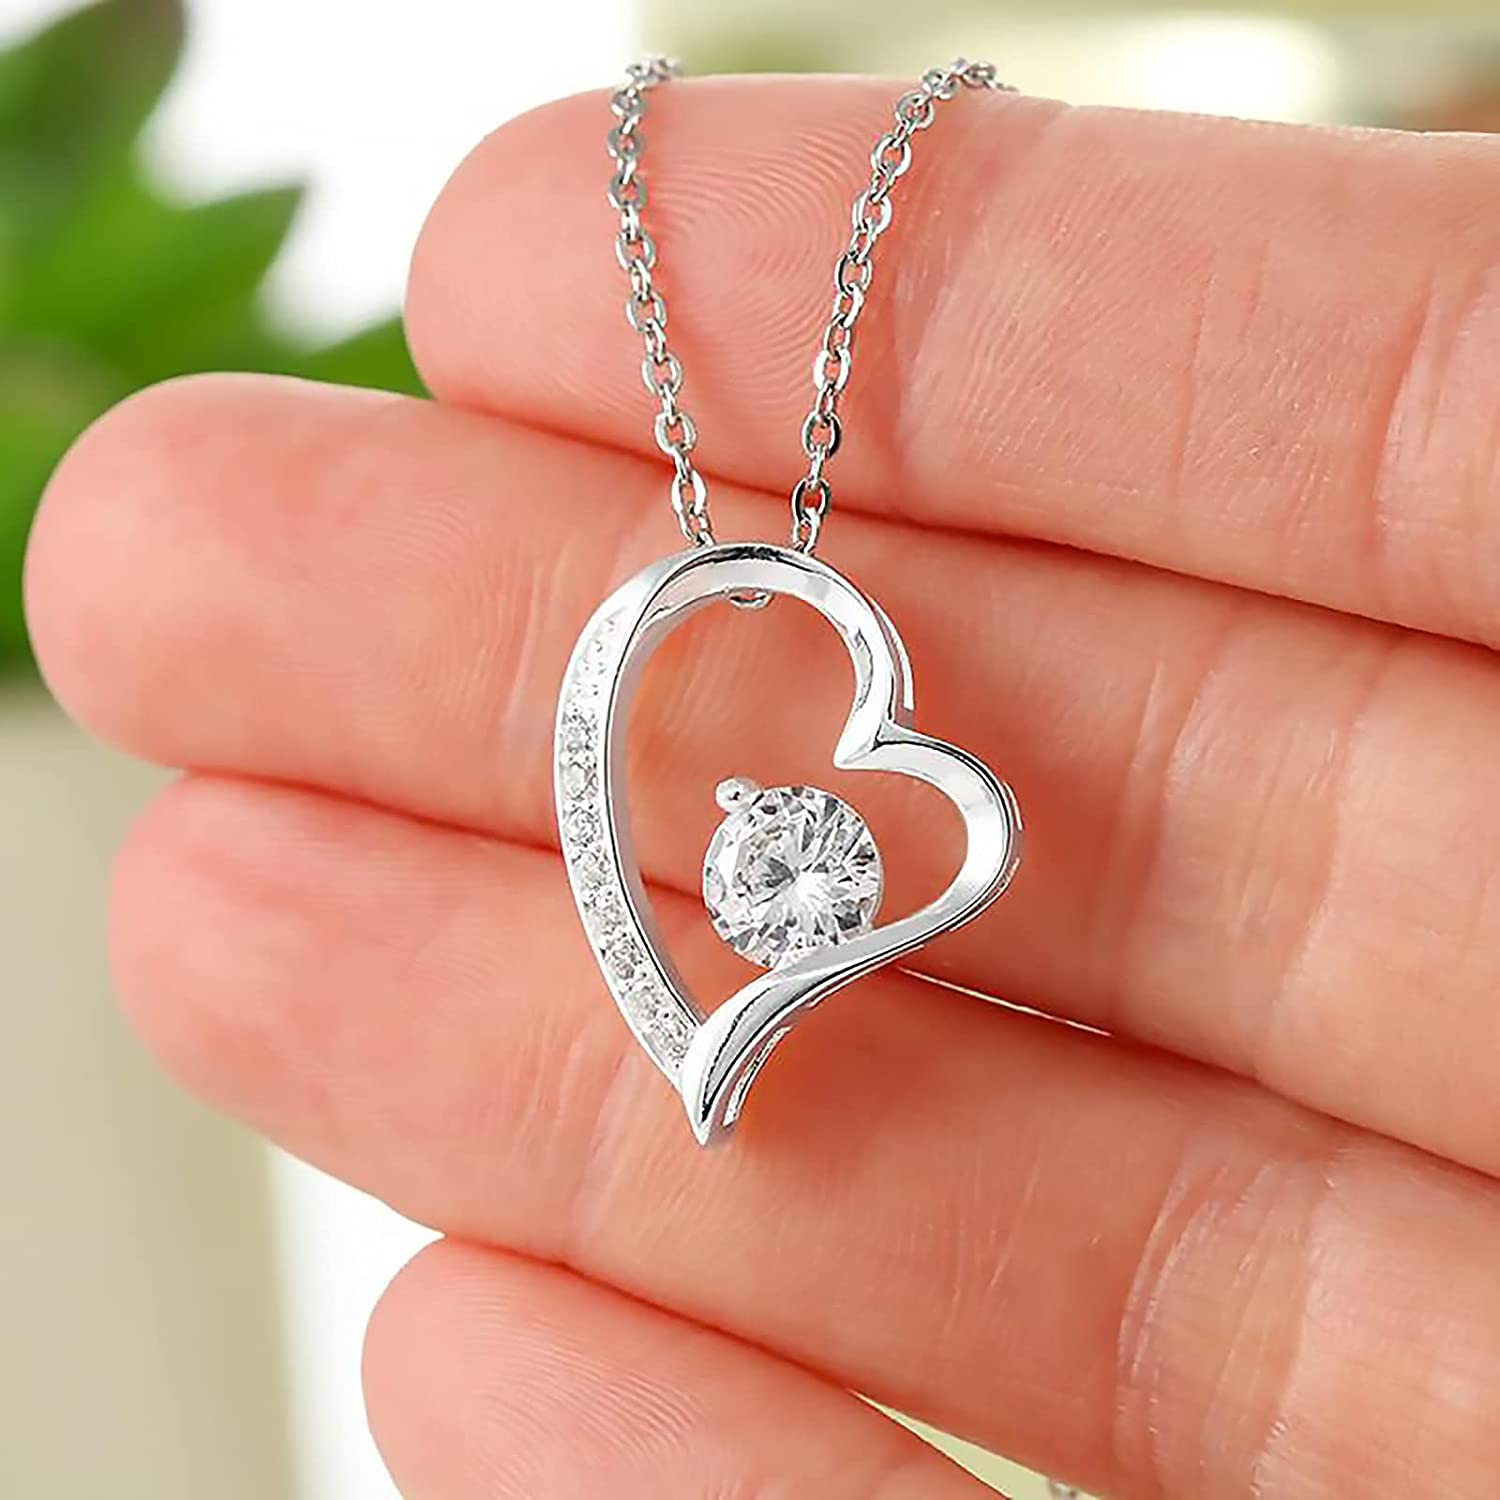 Allmark Gifts Love You Forever Heart Necklace to My Daughter Necklace from Dad and Mom - Daughter Gifts Pendant Necklace with Adjustable Chain - Daughter Necklace with 6.5mm Cubic Zirconia Crystals